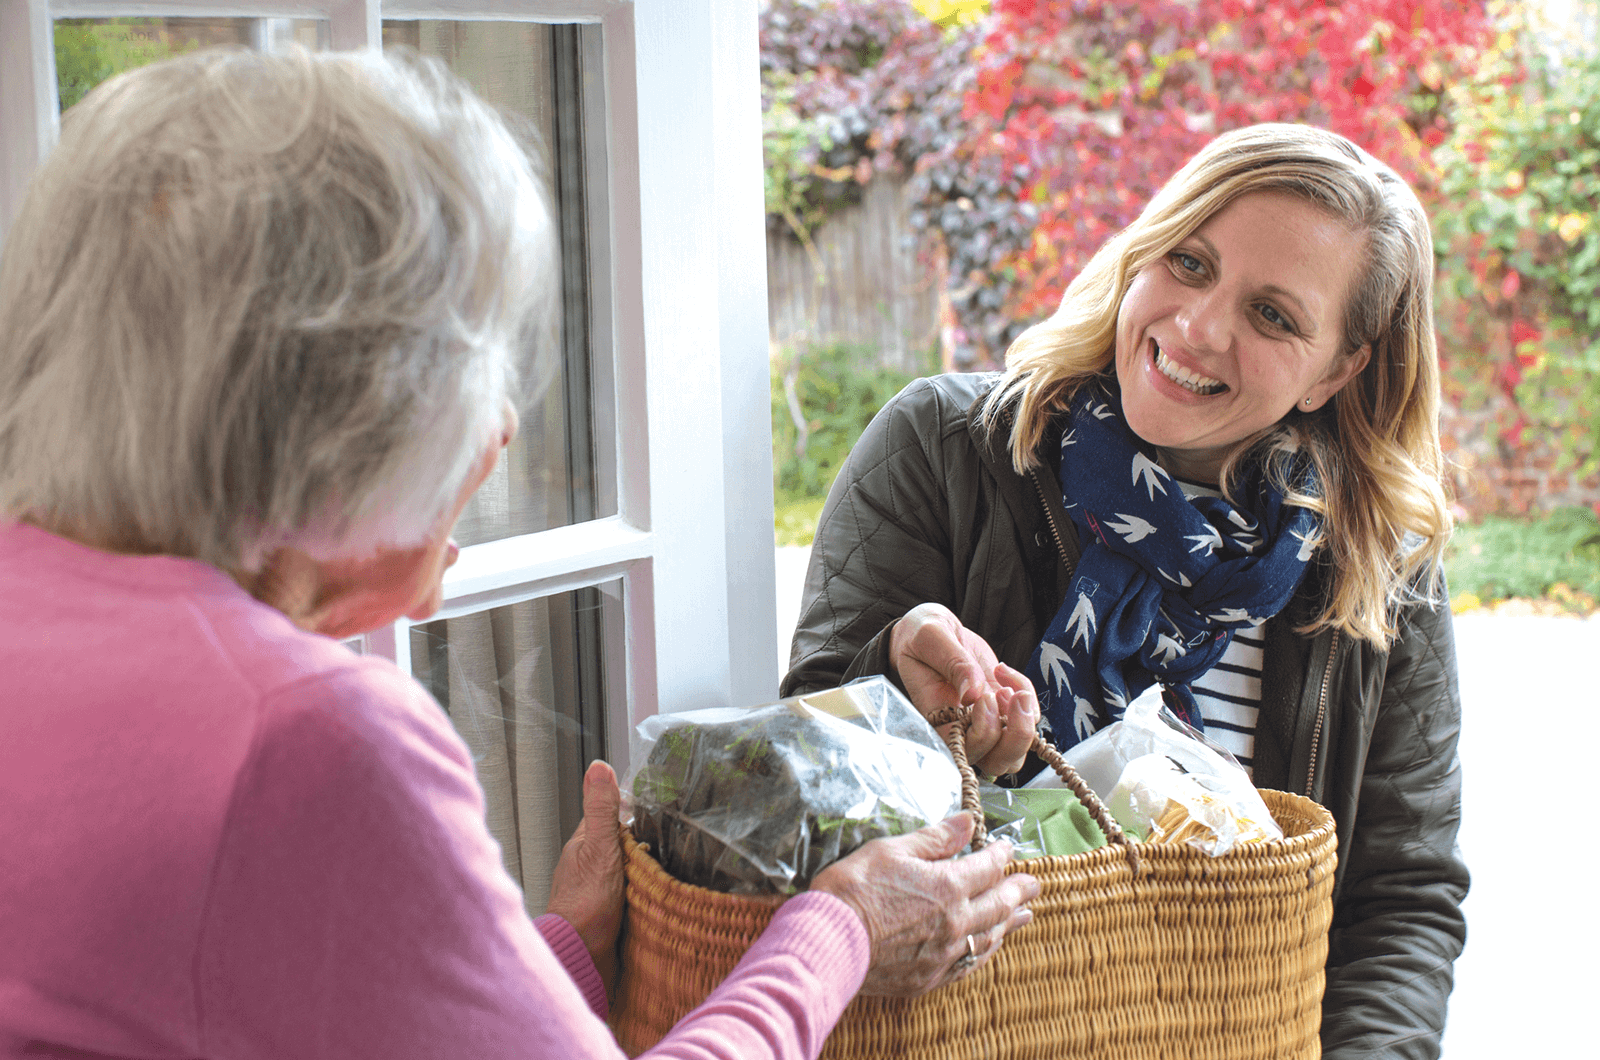 Younger woman hands older woman a basket of food